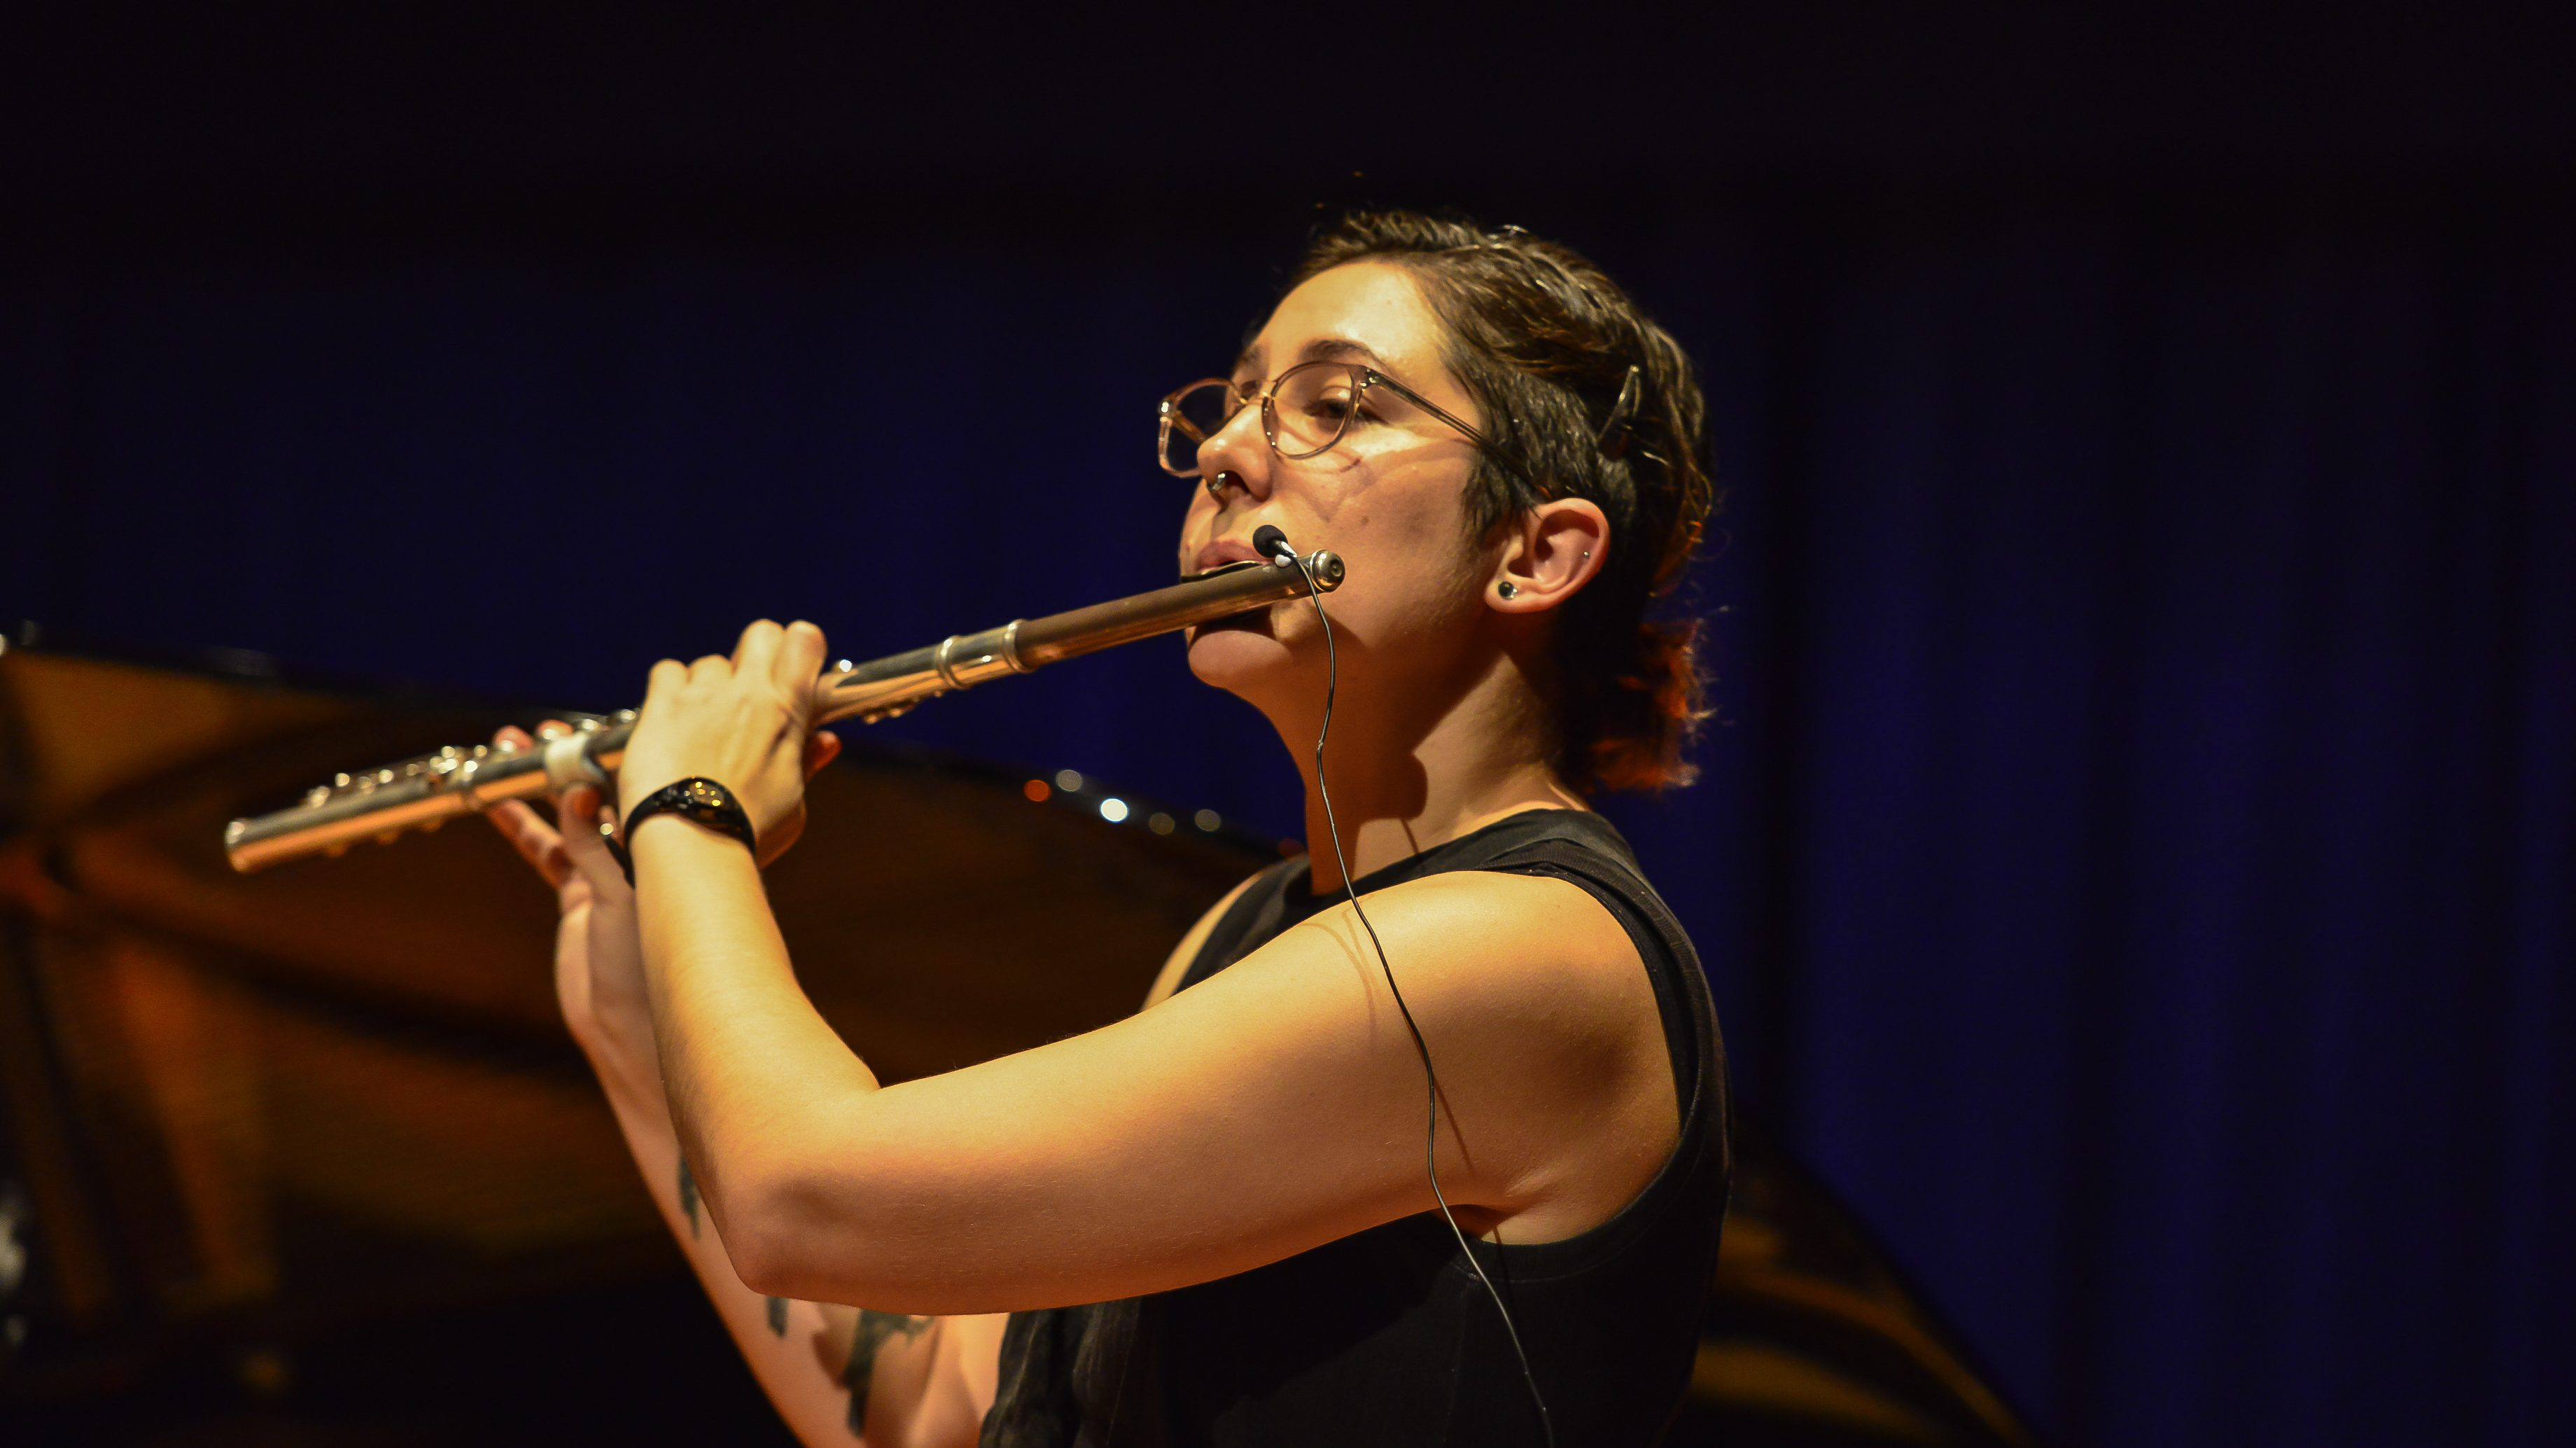 Olive-skinned girl with brown hair and glasses playing the flute. She wears a black sleeveless top and a black watch, and some tattoos on her right arm are visible, but partly obscured.